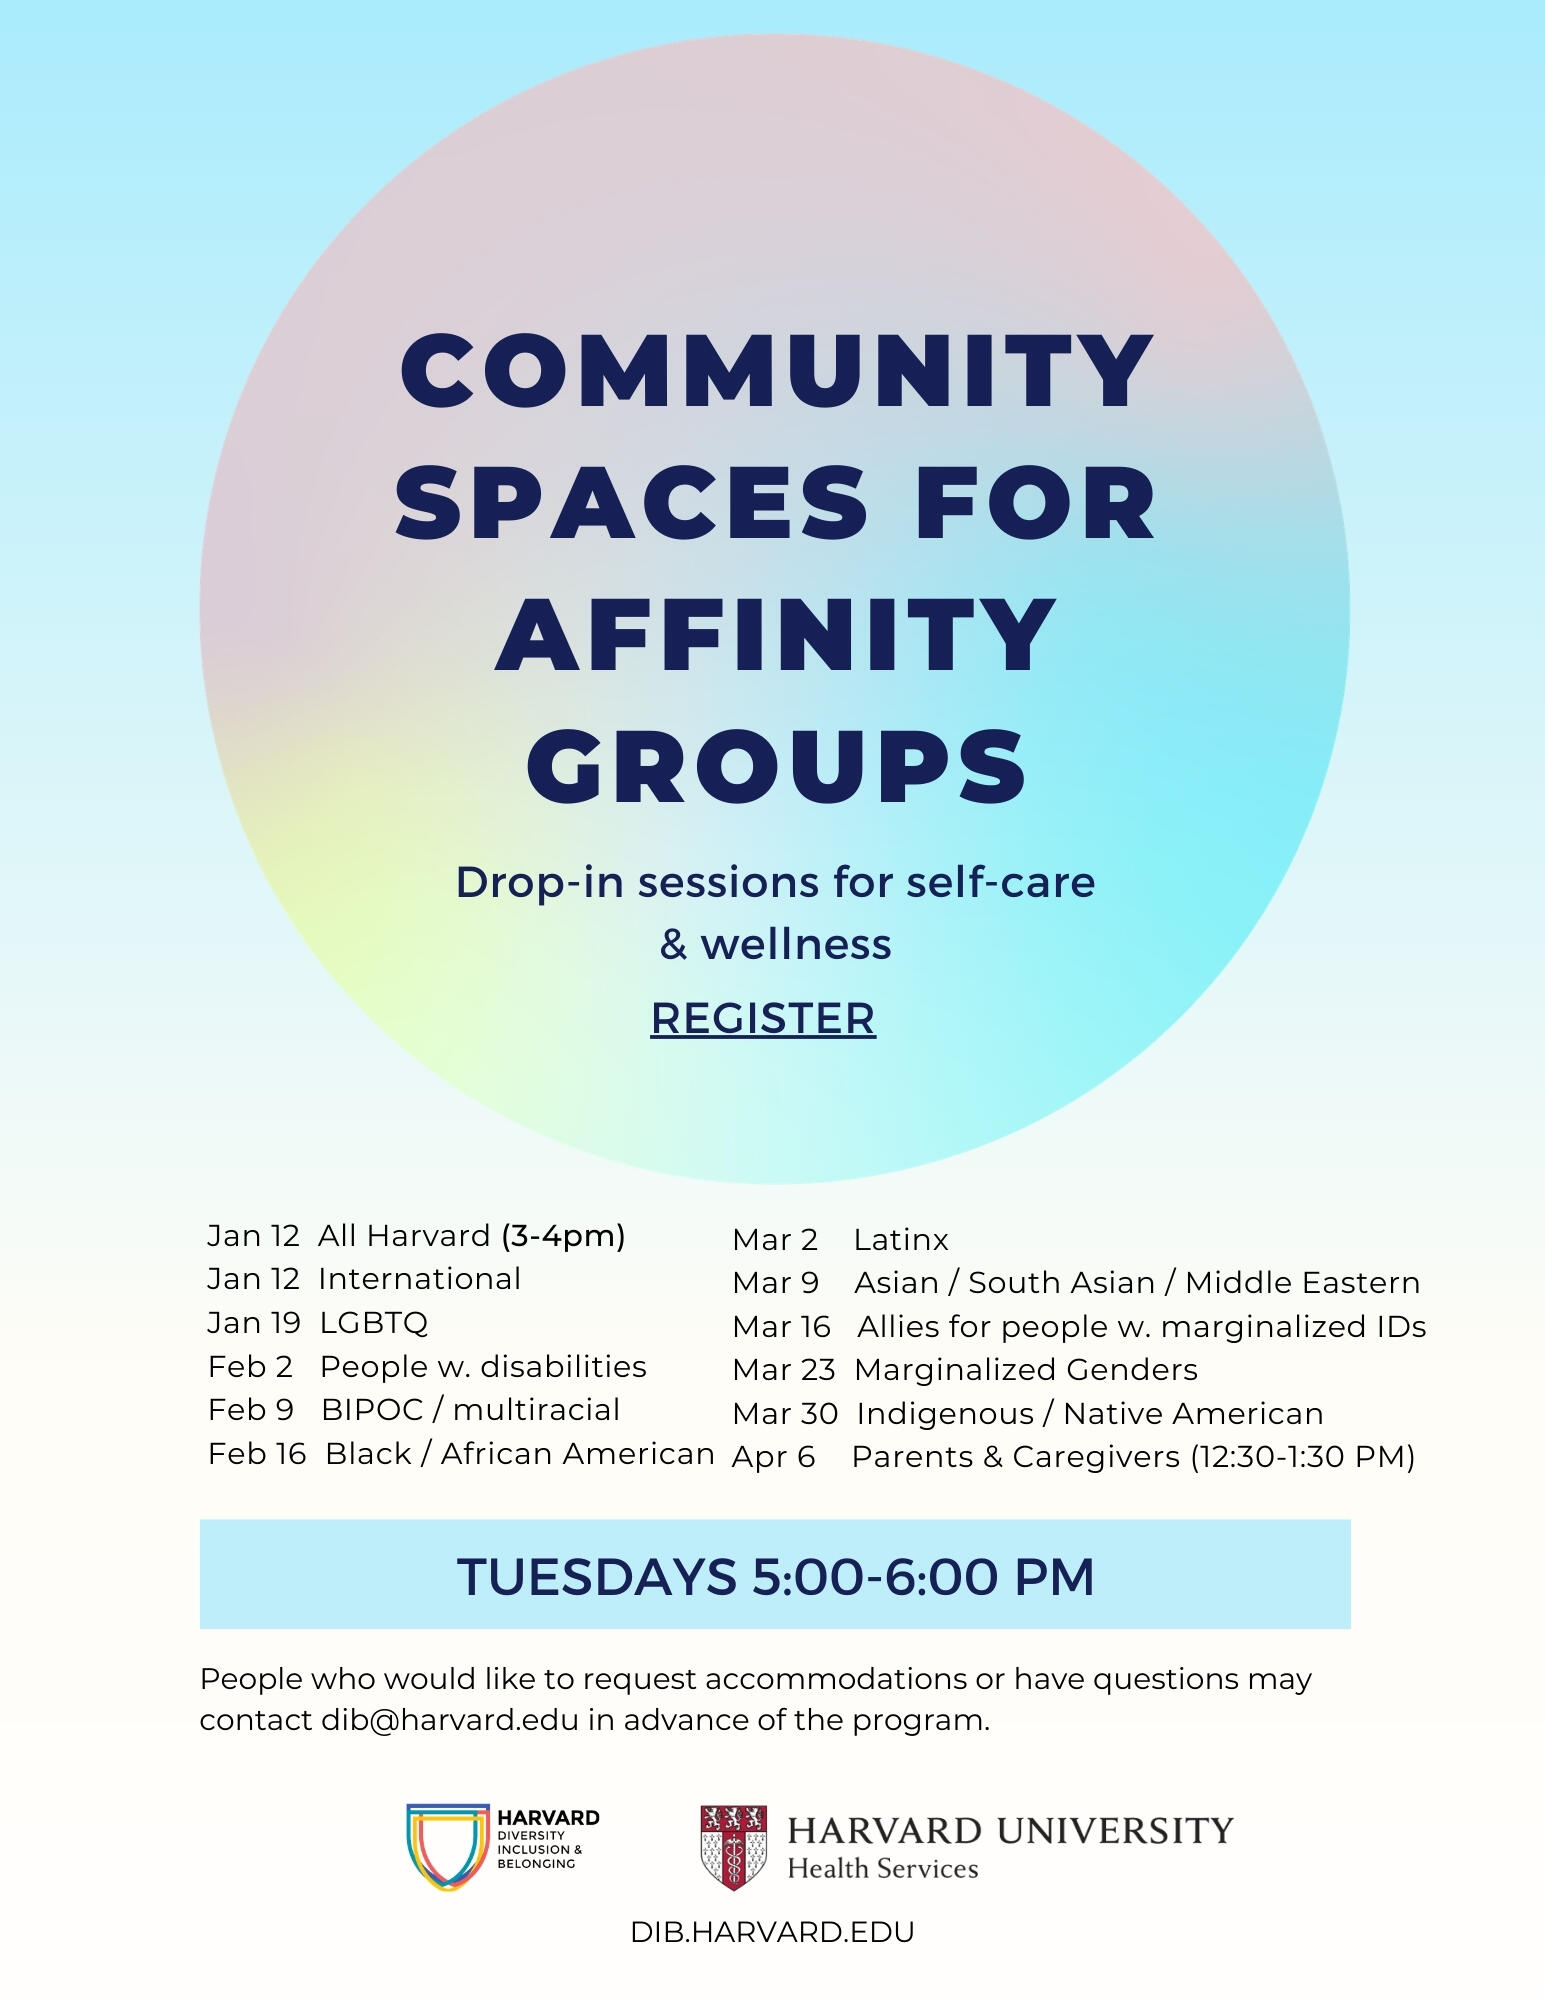 Community Spaces for Affinity Groups, words floating in a rainbow orb against a blue sky